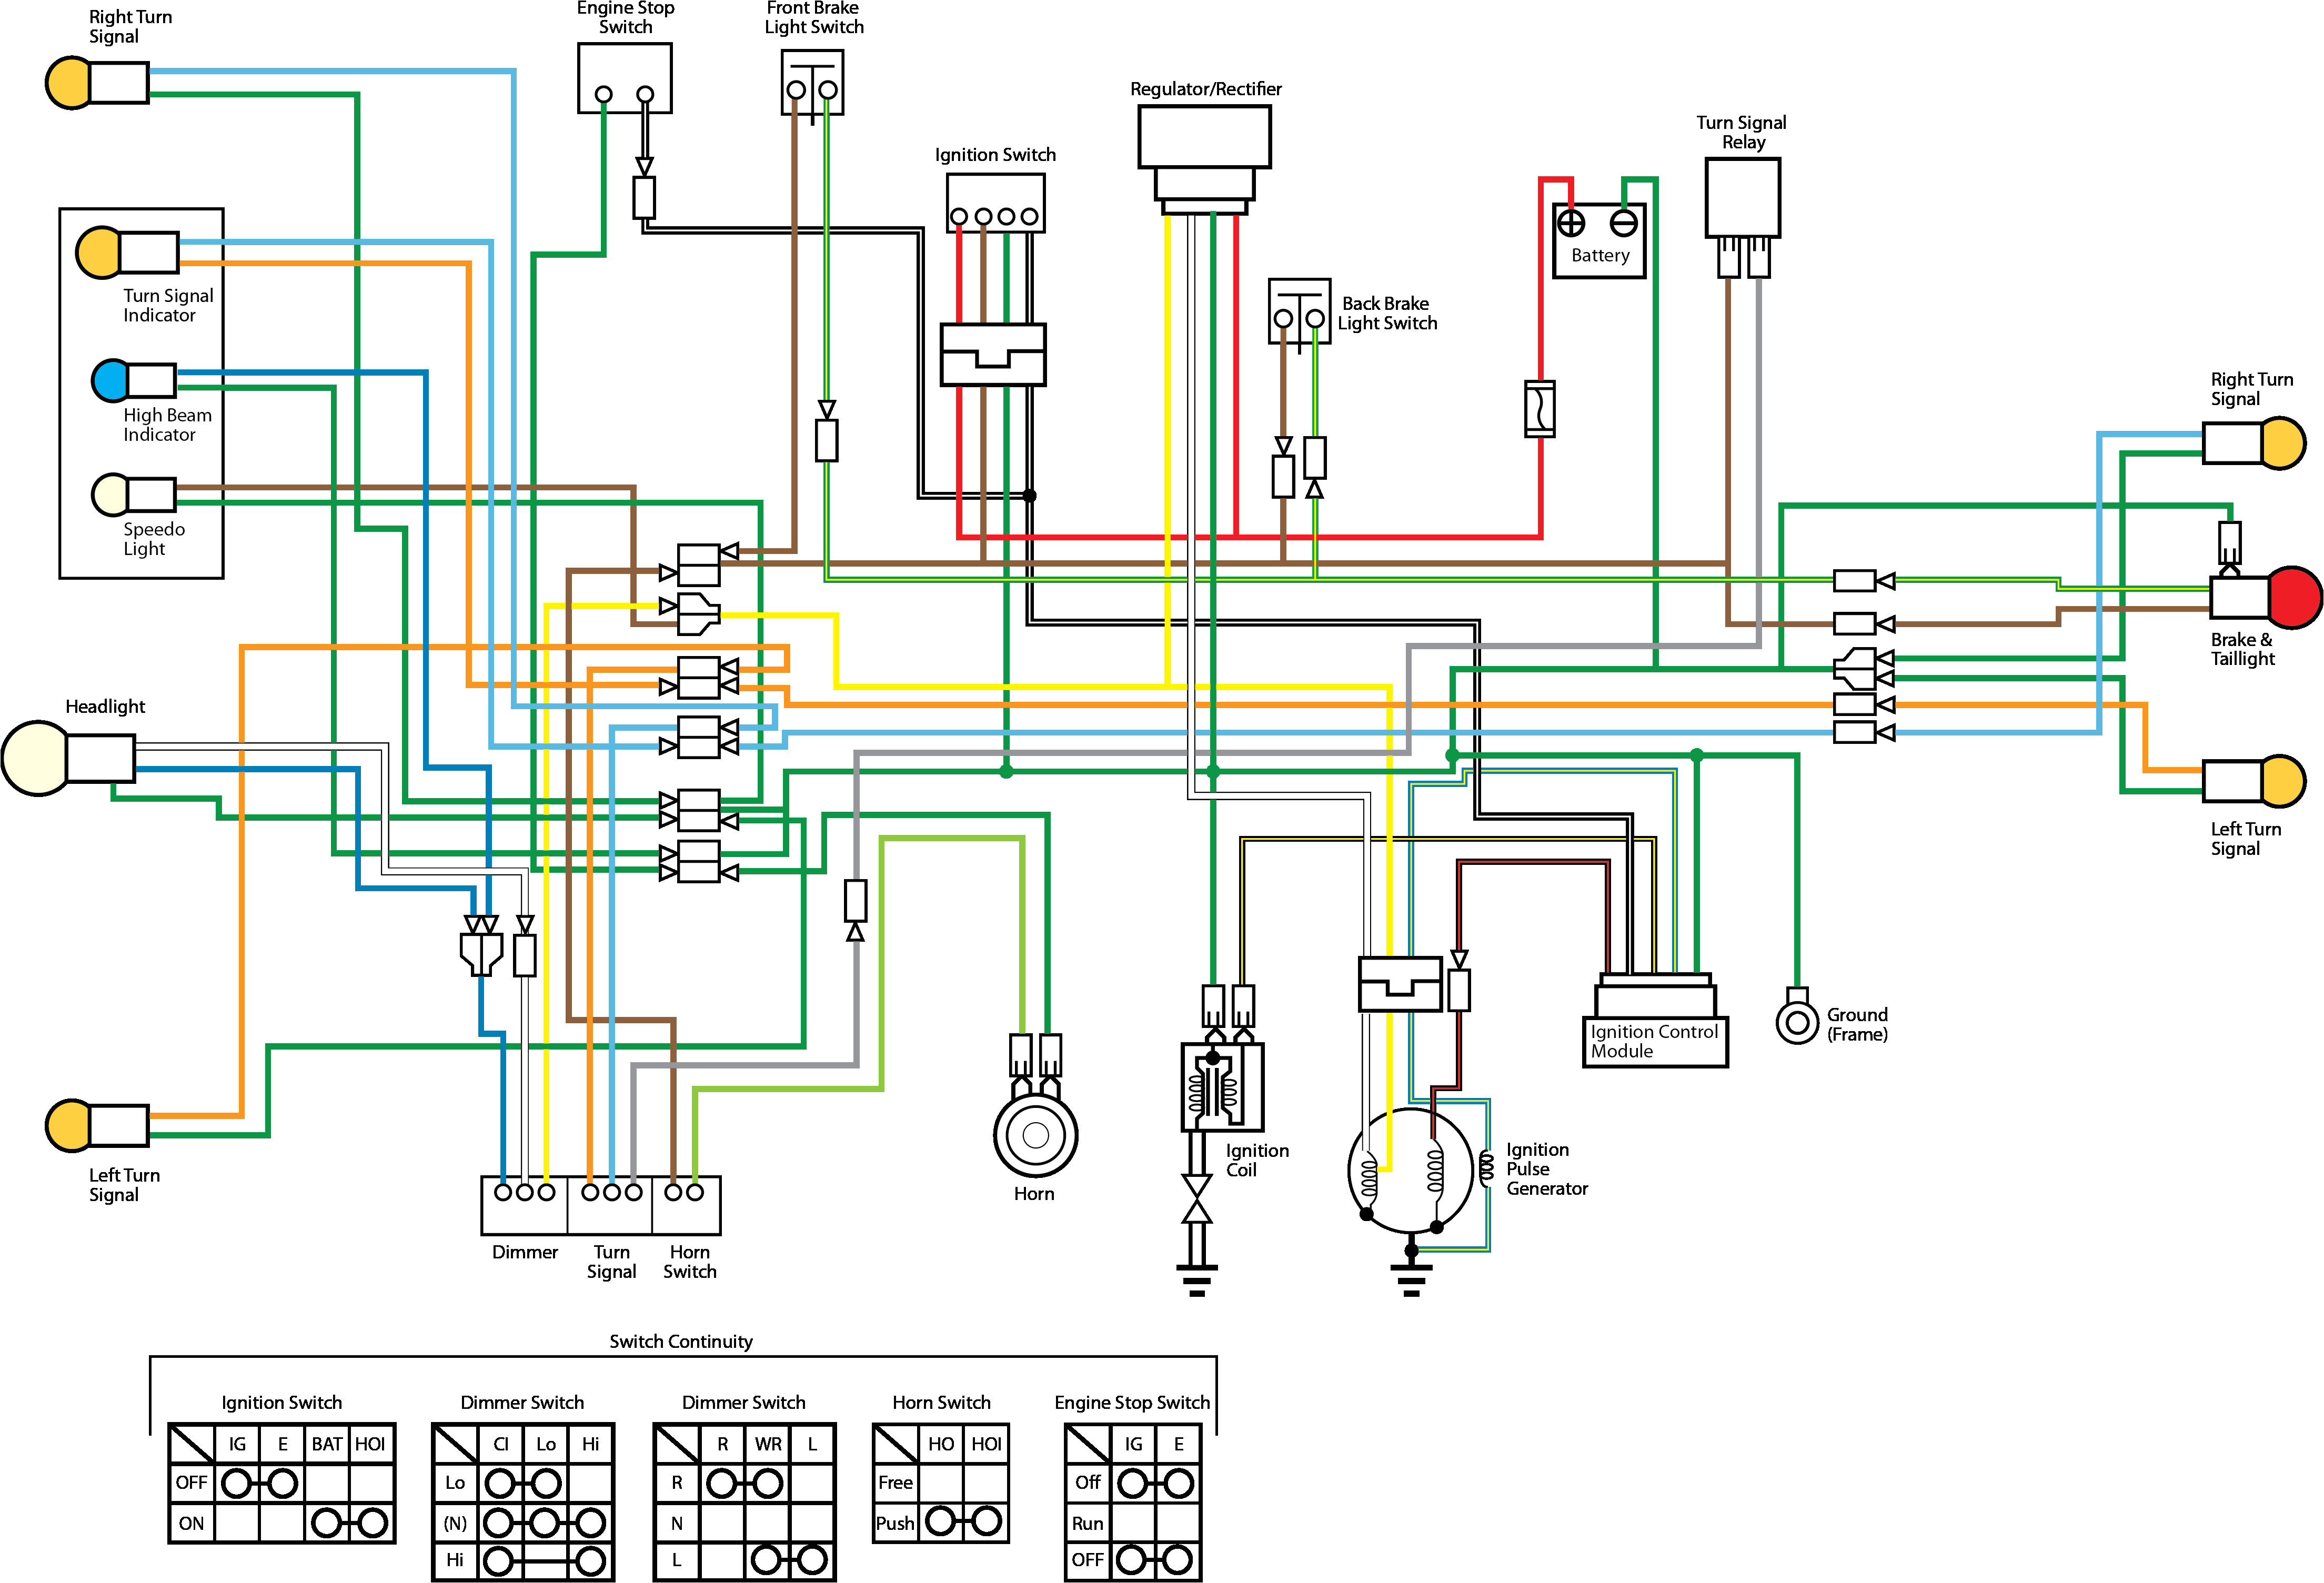 honda 125 wiring diagram wiring diagram home 1982 honda cb125s wiring diagram honda 125 wiring diagram